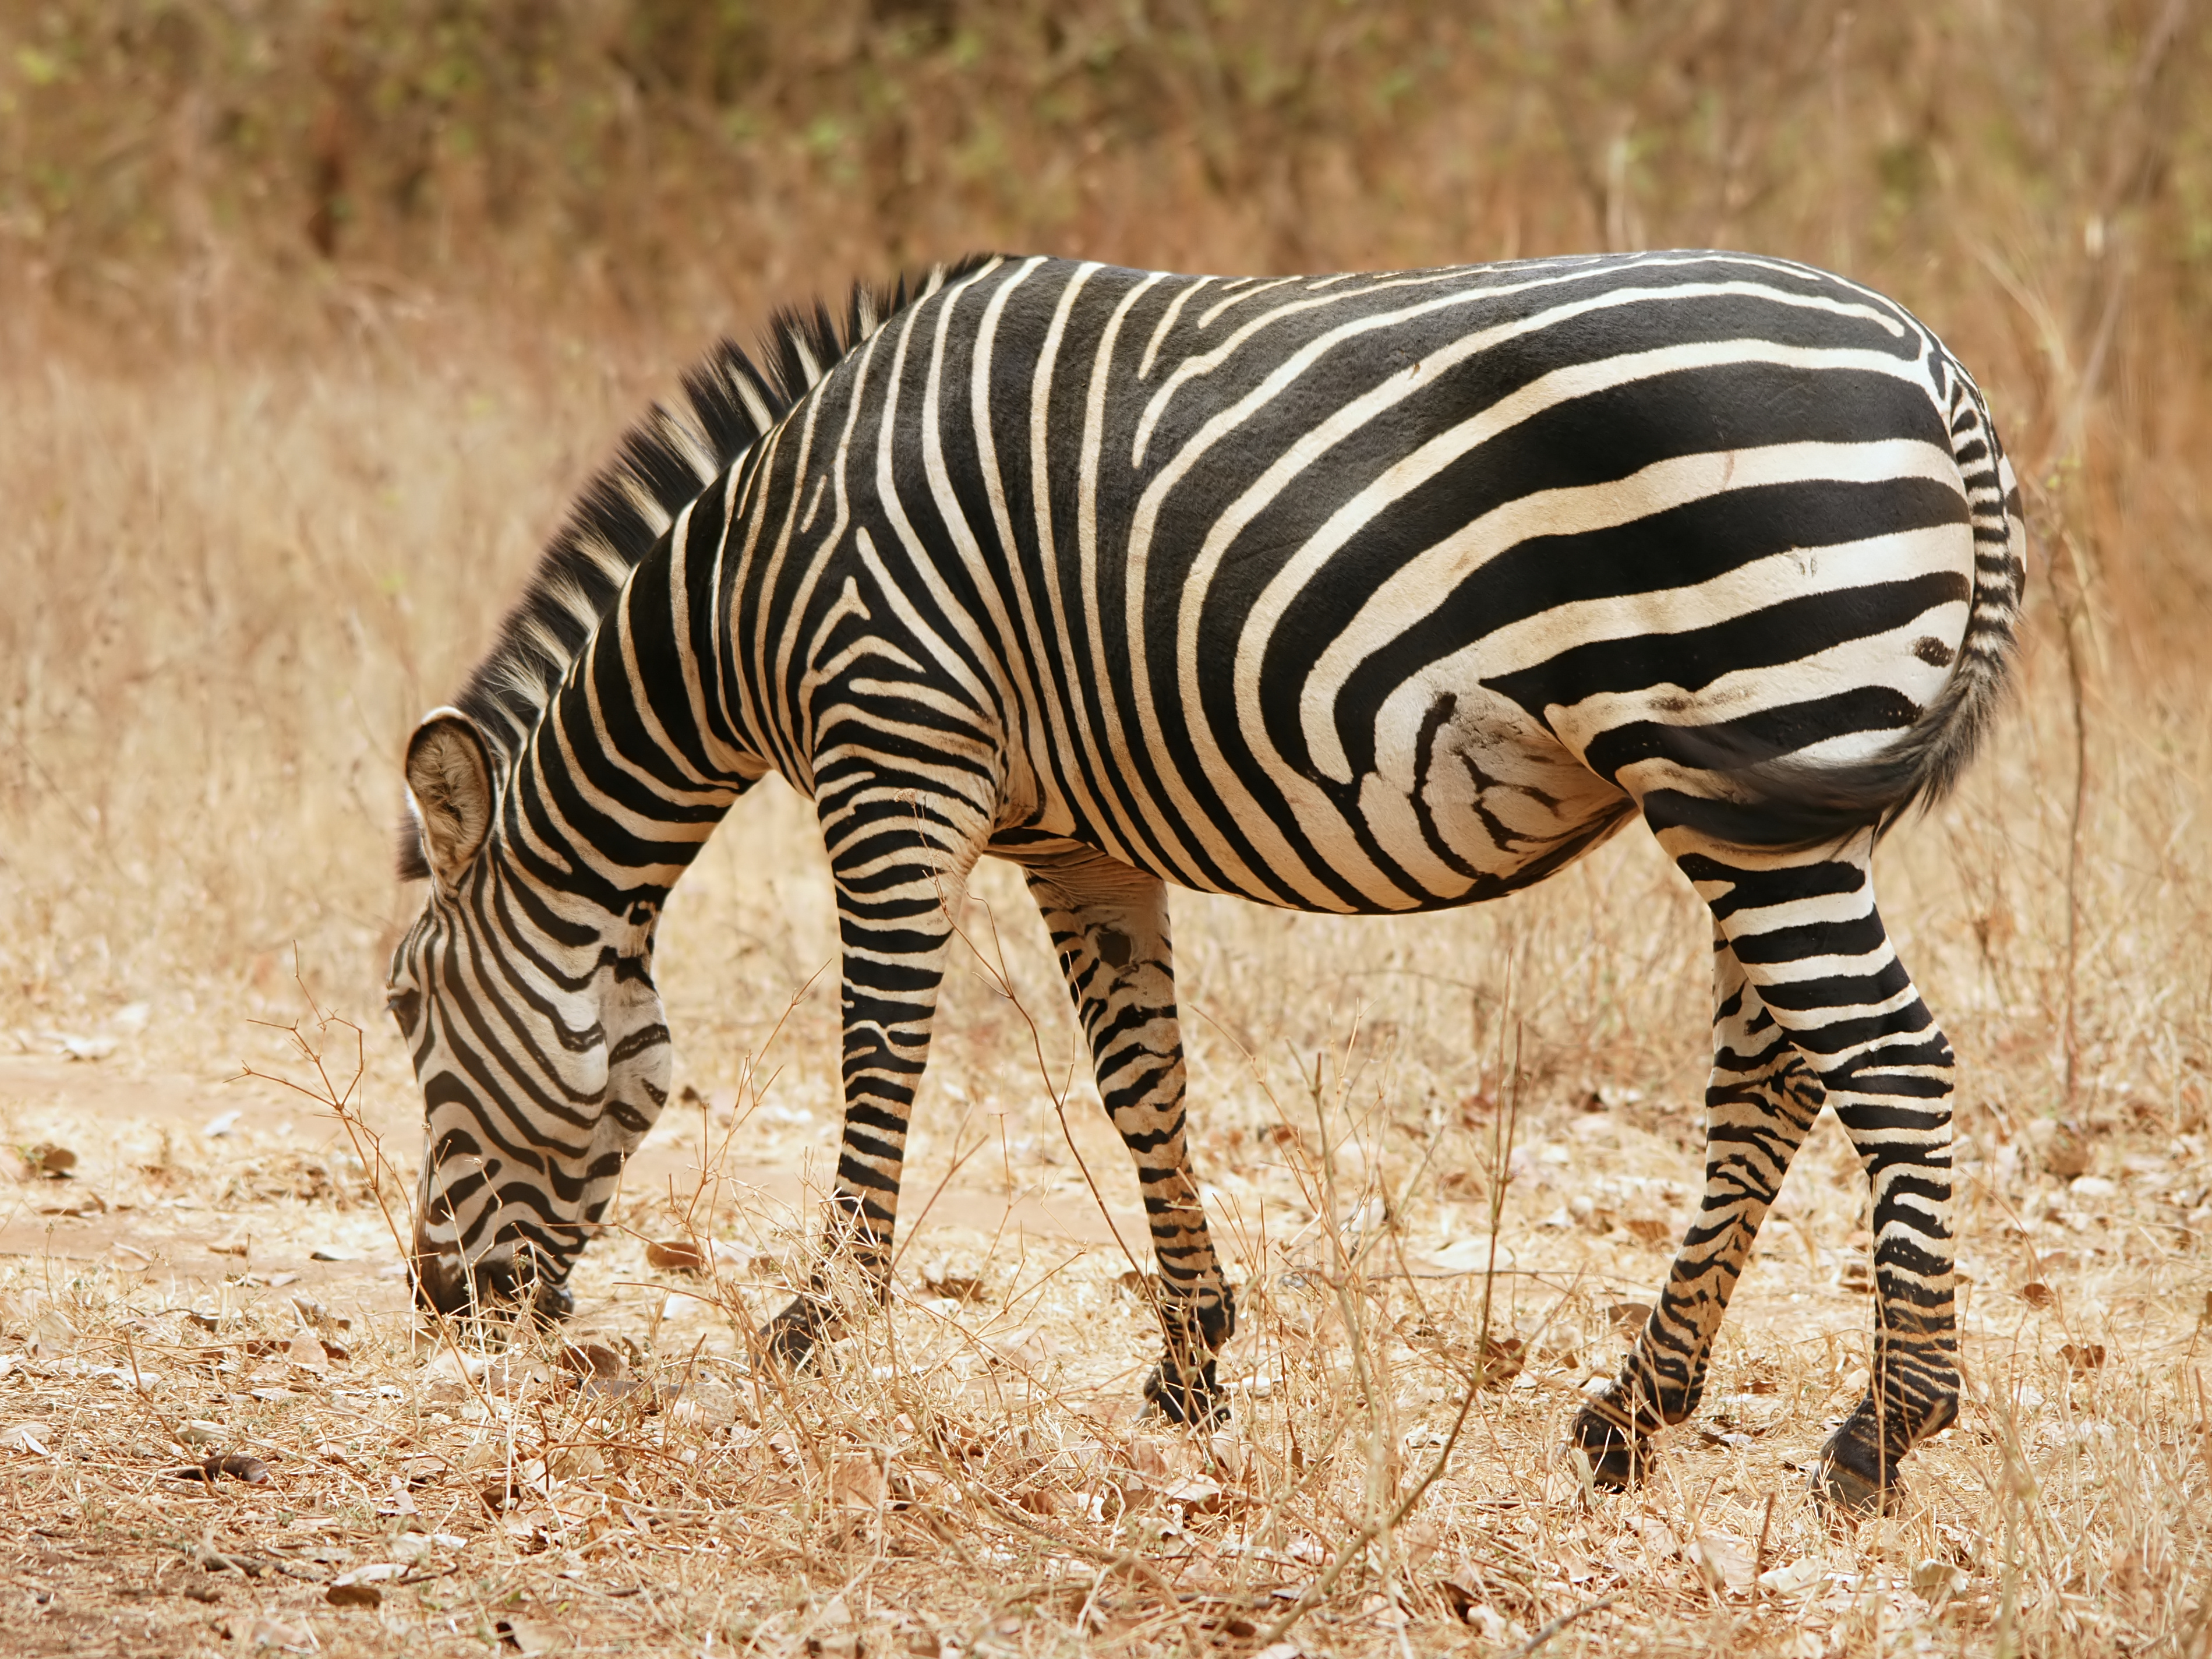 Seeing the wildlife in Kenya can be great fun, but you can eat them too!